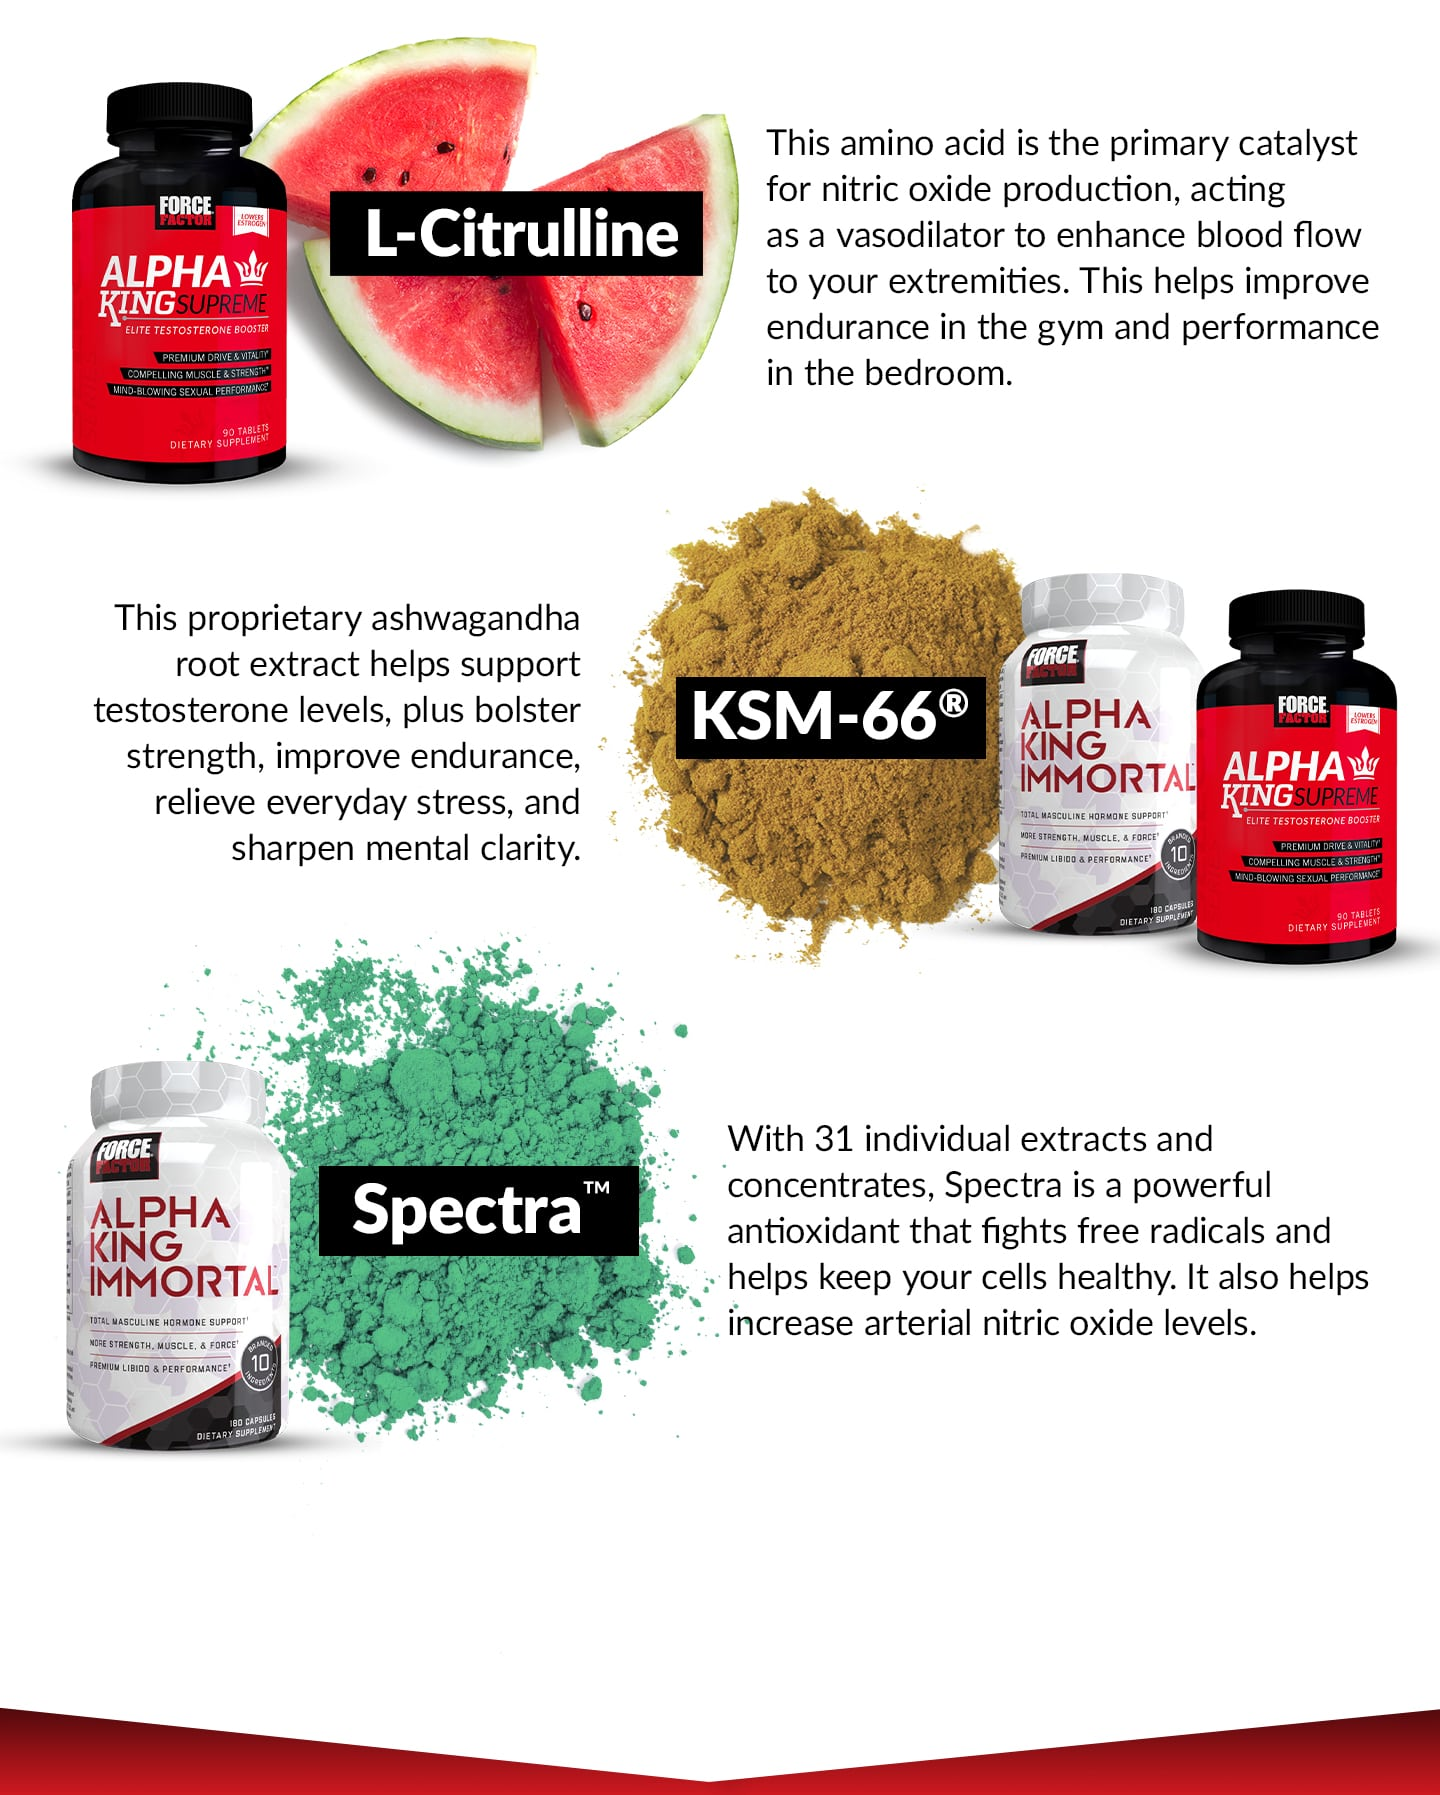 L-Citrulline - This amino acid is the primary catalyst for nitric oxide production, acting as a vasodilator to enhance blood flow to your extremities. This helps improve endurance in the gym and performance in the bedroom. KSM-66® - This proprietary ashwagandha root extract helps support testosterone levels, plus bolster strength, improve endurance, relieve everyday stress, and sharpen mental clarity. Spectra™ - With 31 individual extracts and concentrates, Spectra is a powerful antioxidant that fights free radicals and helps keep your cells healthy. It also helps increase arterial nitric oxide levels.